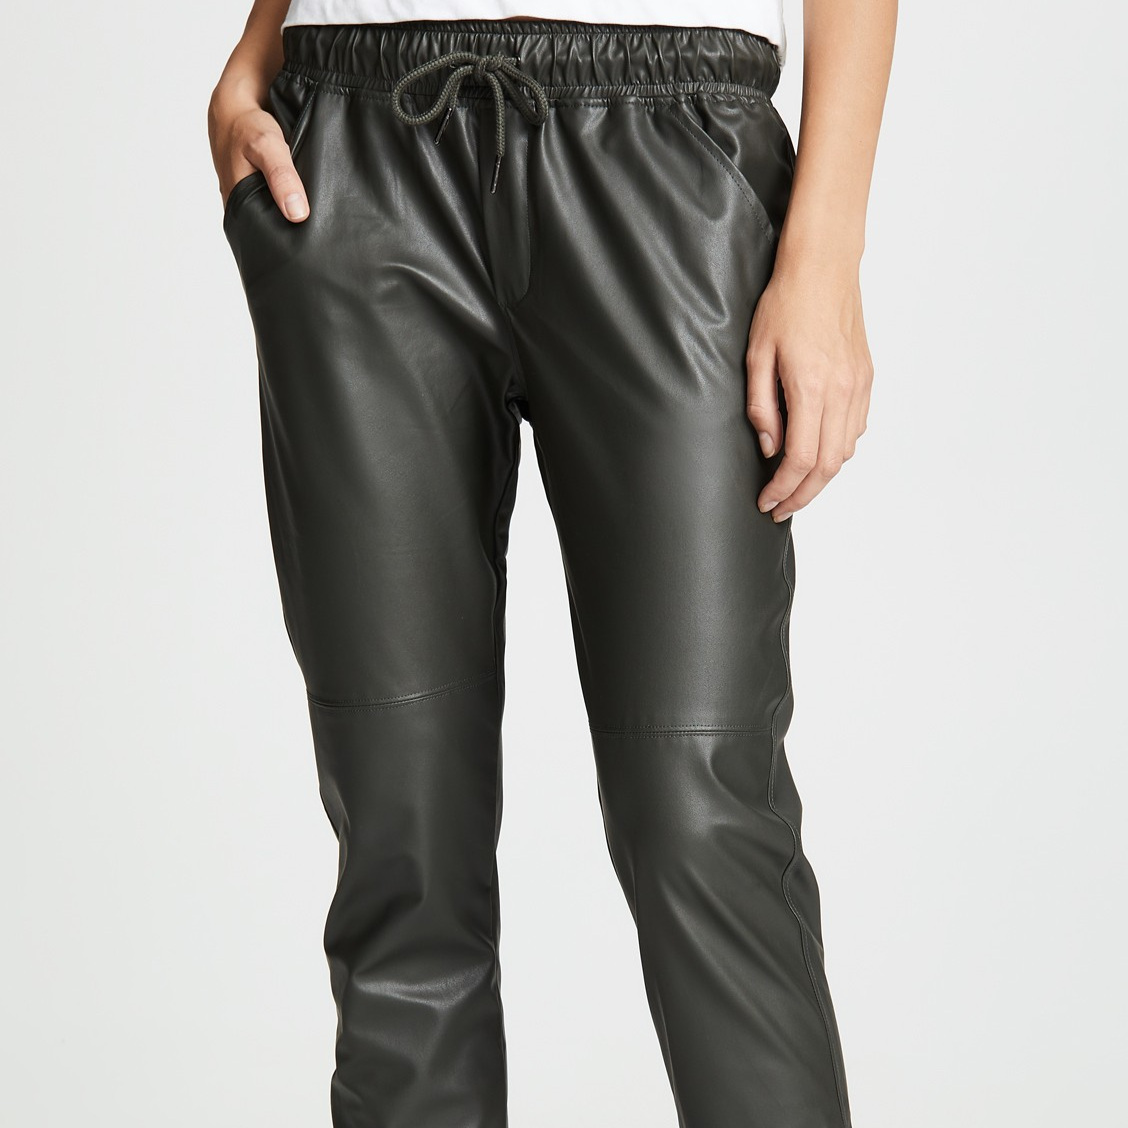 black-leather-pants